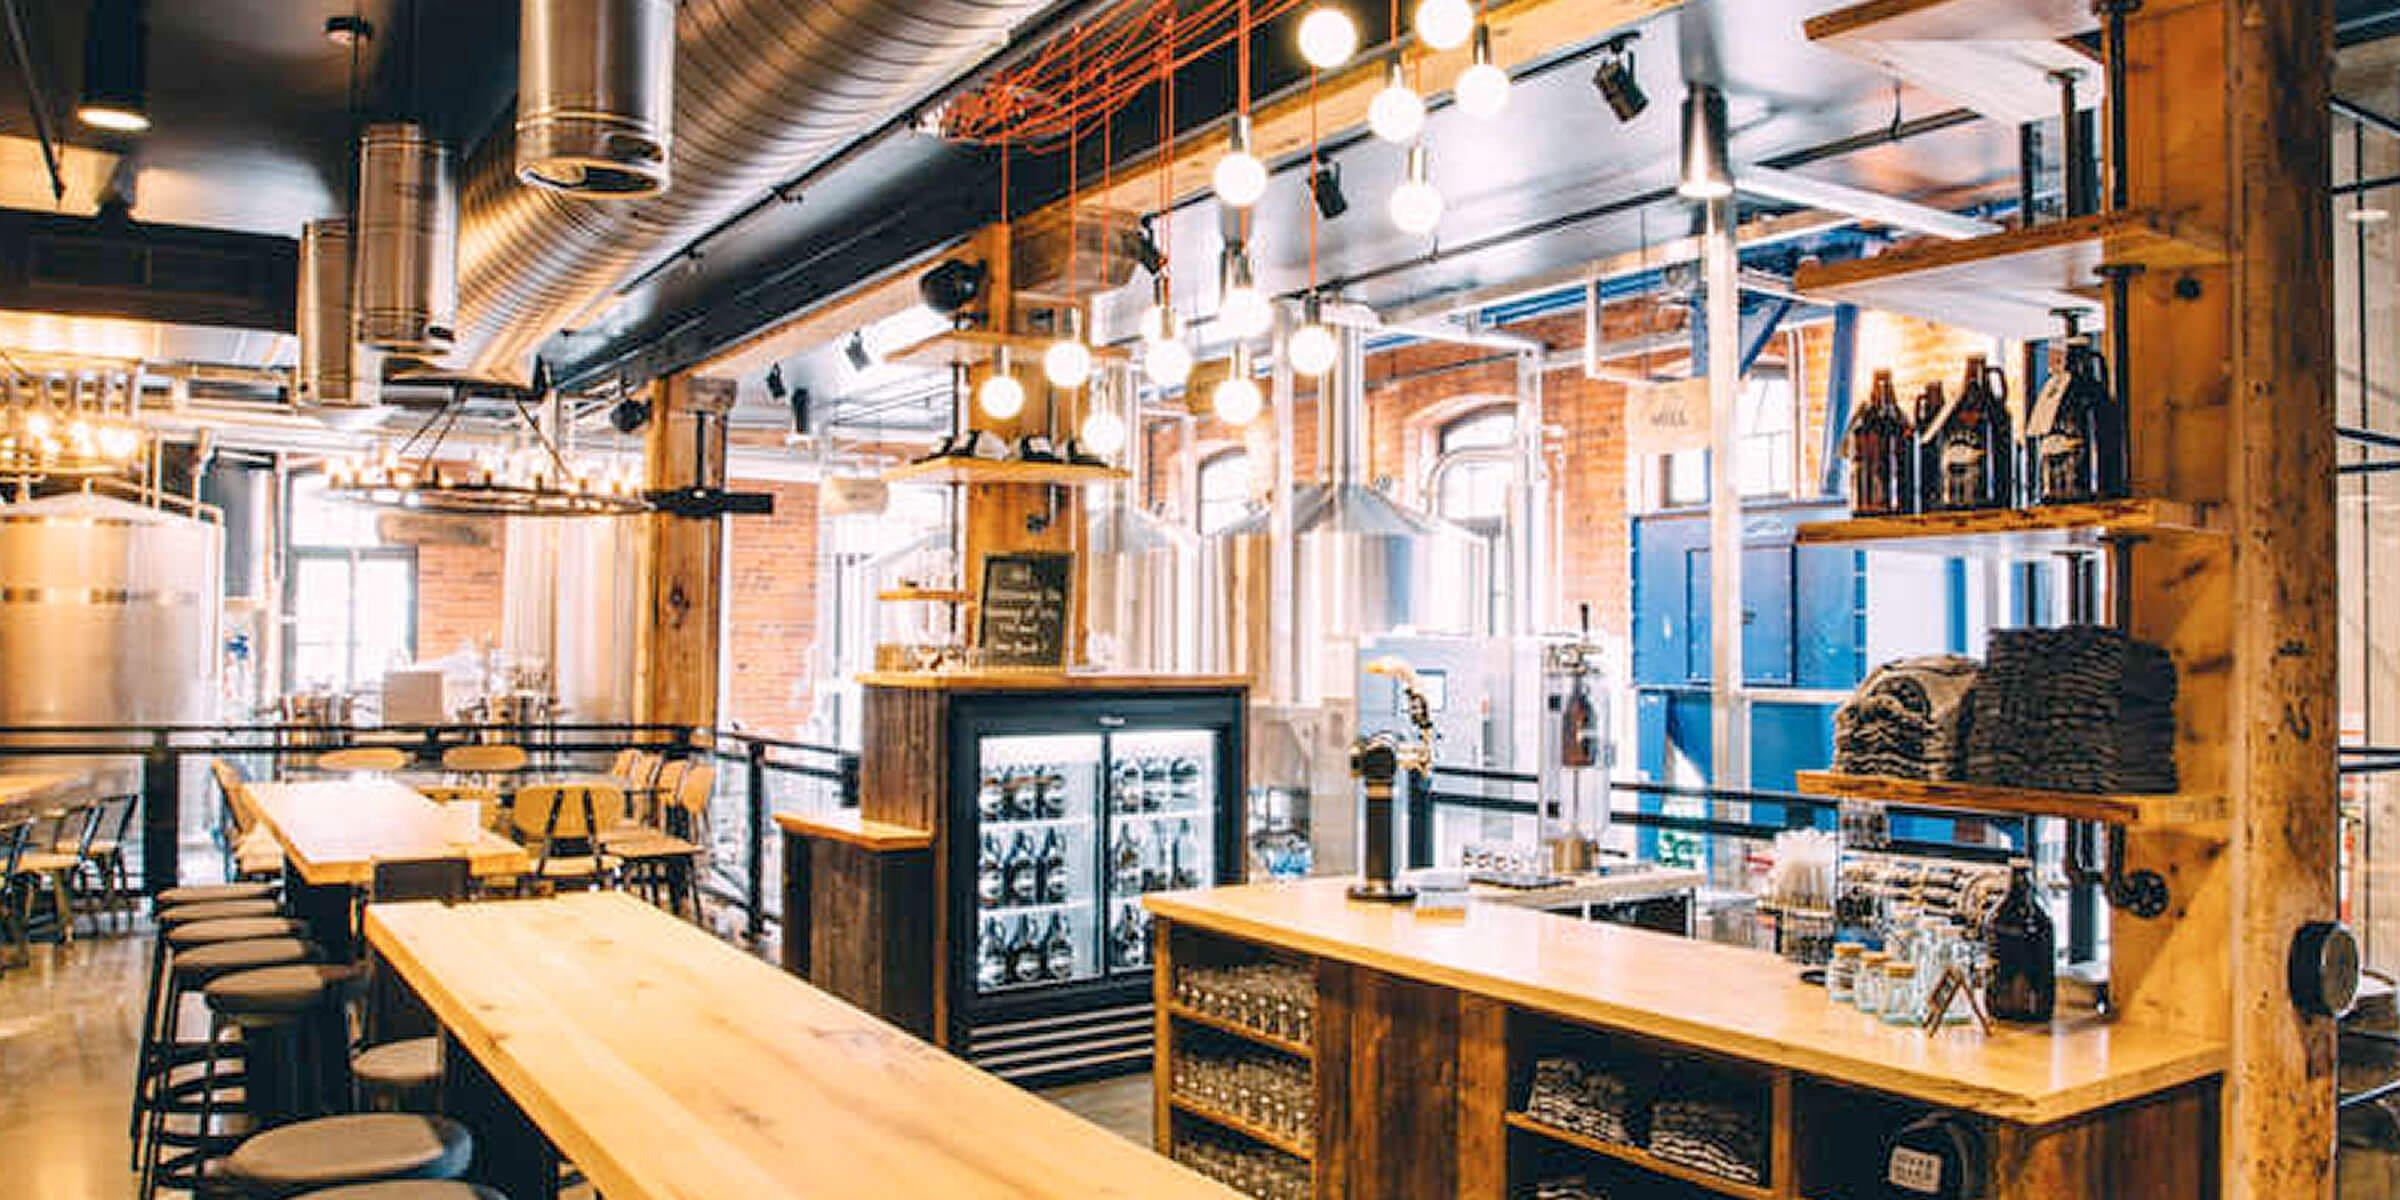 Inside the taproom at the Toronto, Canada location of Goose Island Beer Co.